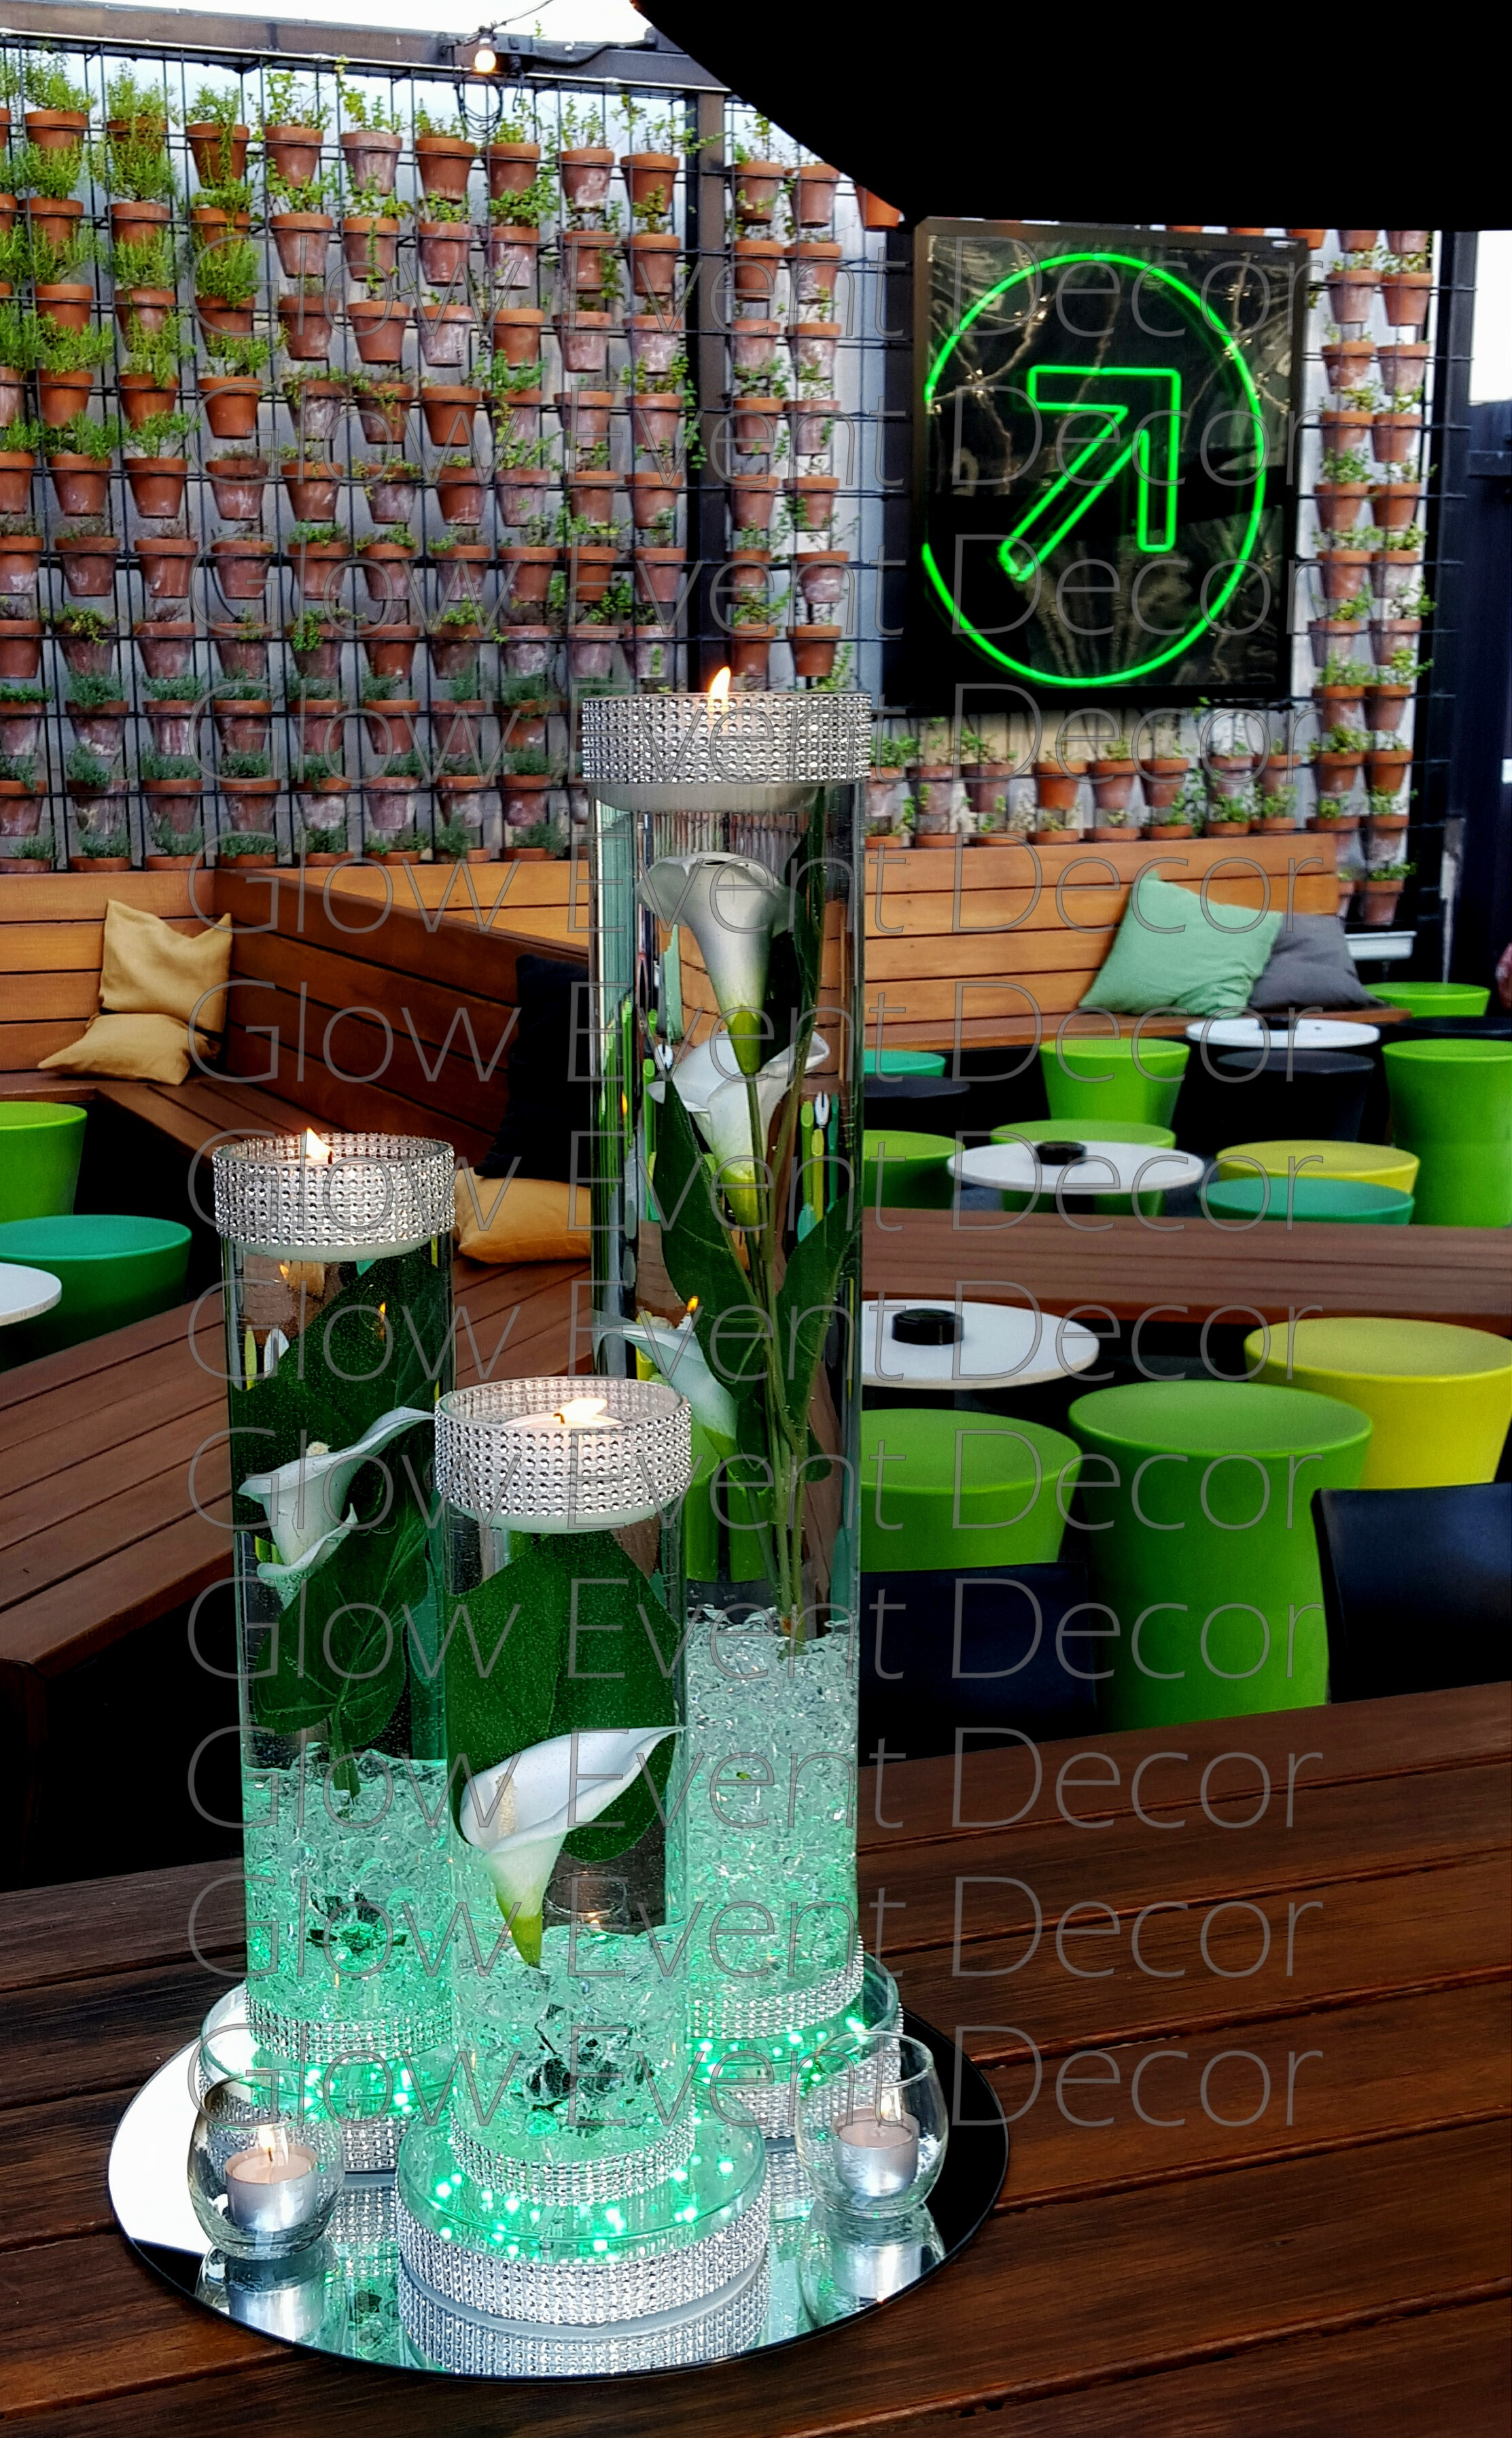 glass cylinder vase centerpiece ideas of led orchid cylinder vase glow event decor intended for trio of cylinder vases with floating candles submersible flowers for wedding bridal table centrepiece decorations